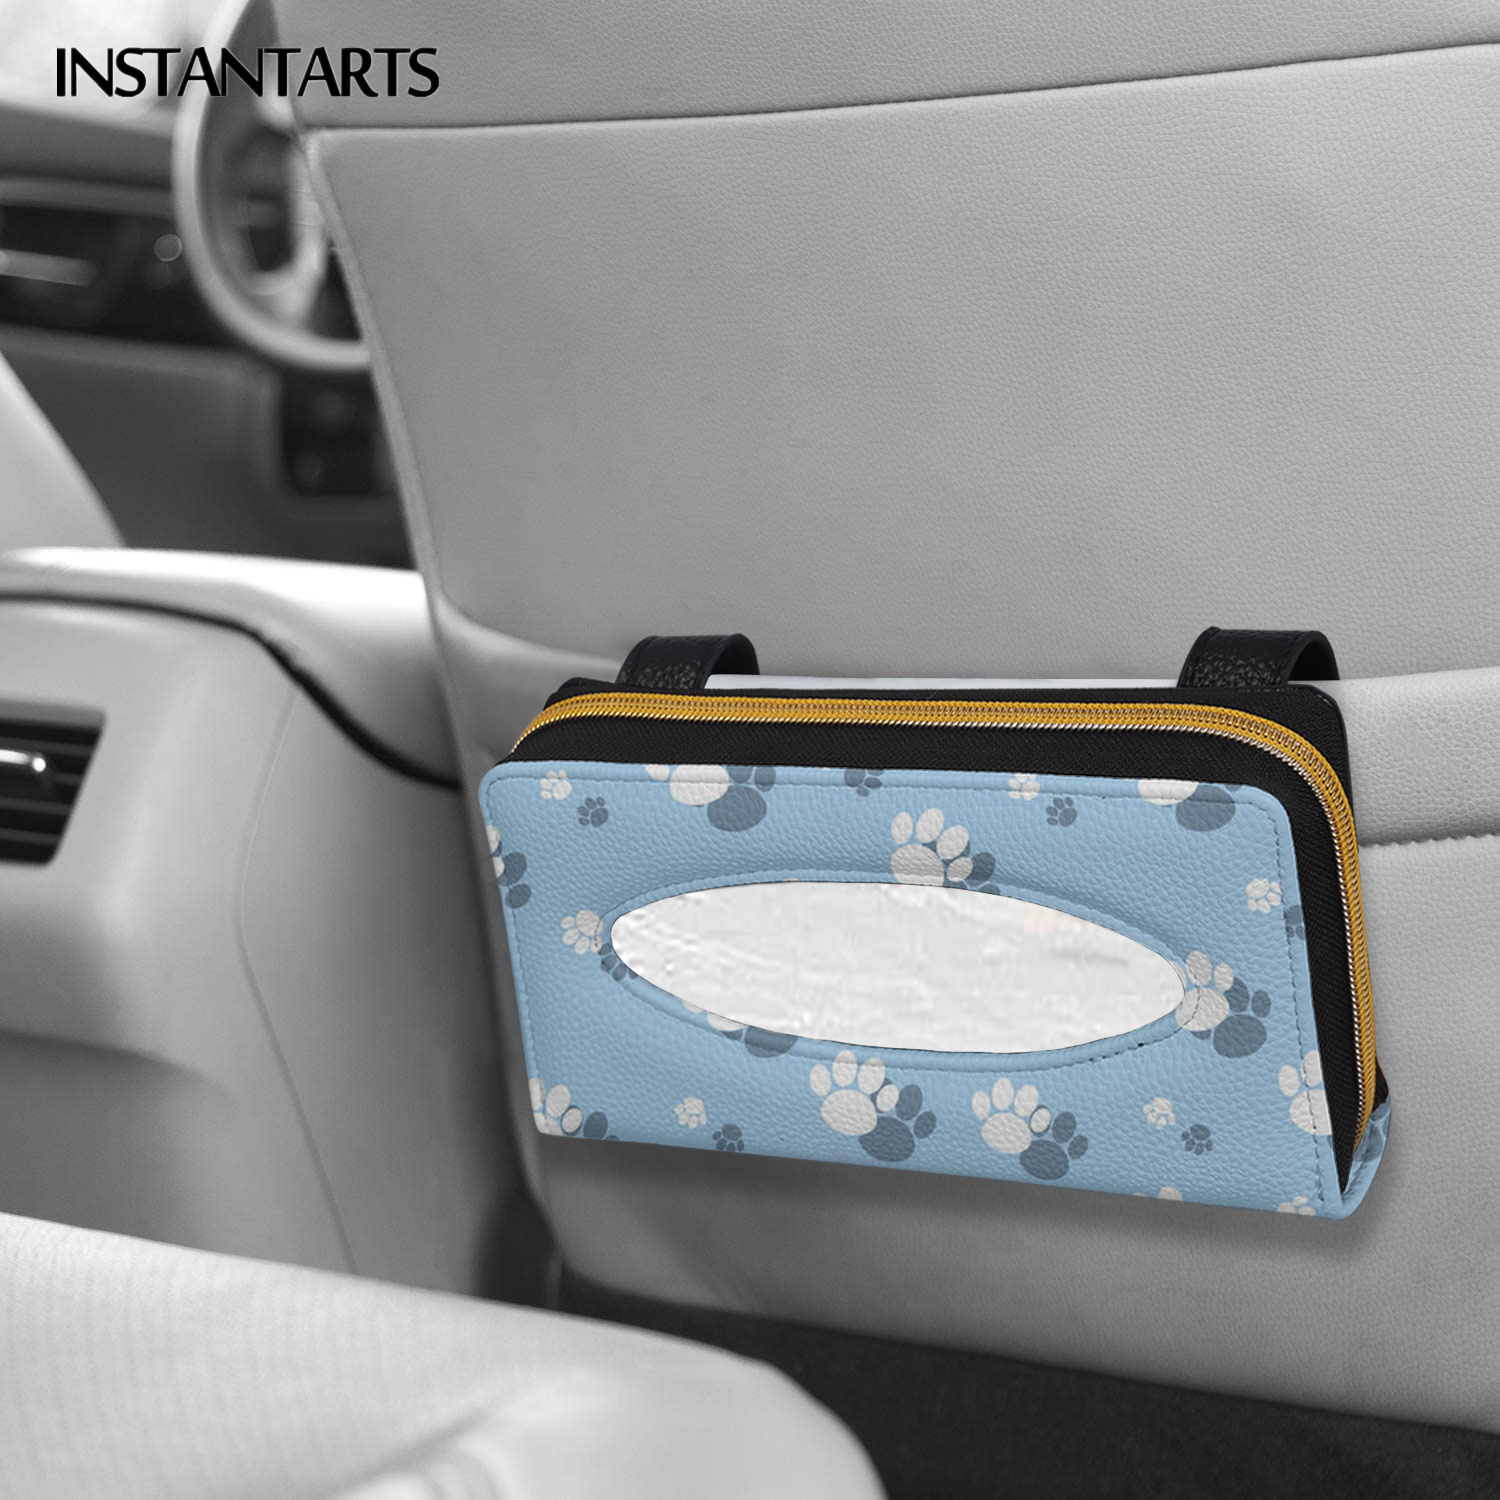 INSTANTARTS Lovely Dog Paw Pattern Car Protector Tissue Holder PU Leather Hanging Bag Car Chair Back Paper Towel Holder New